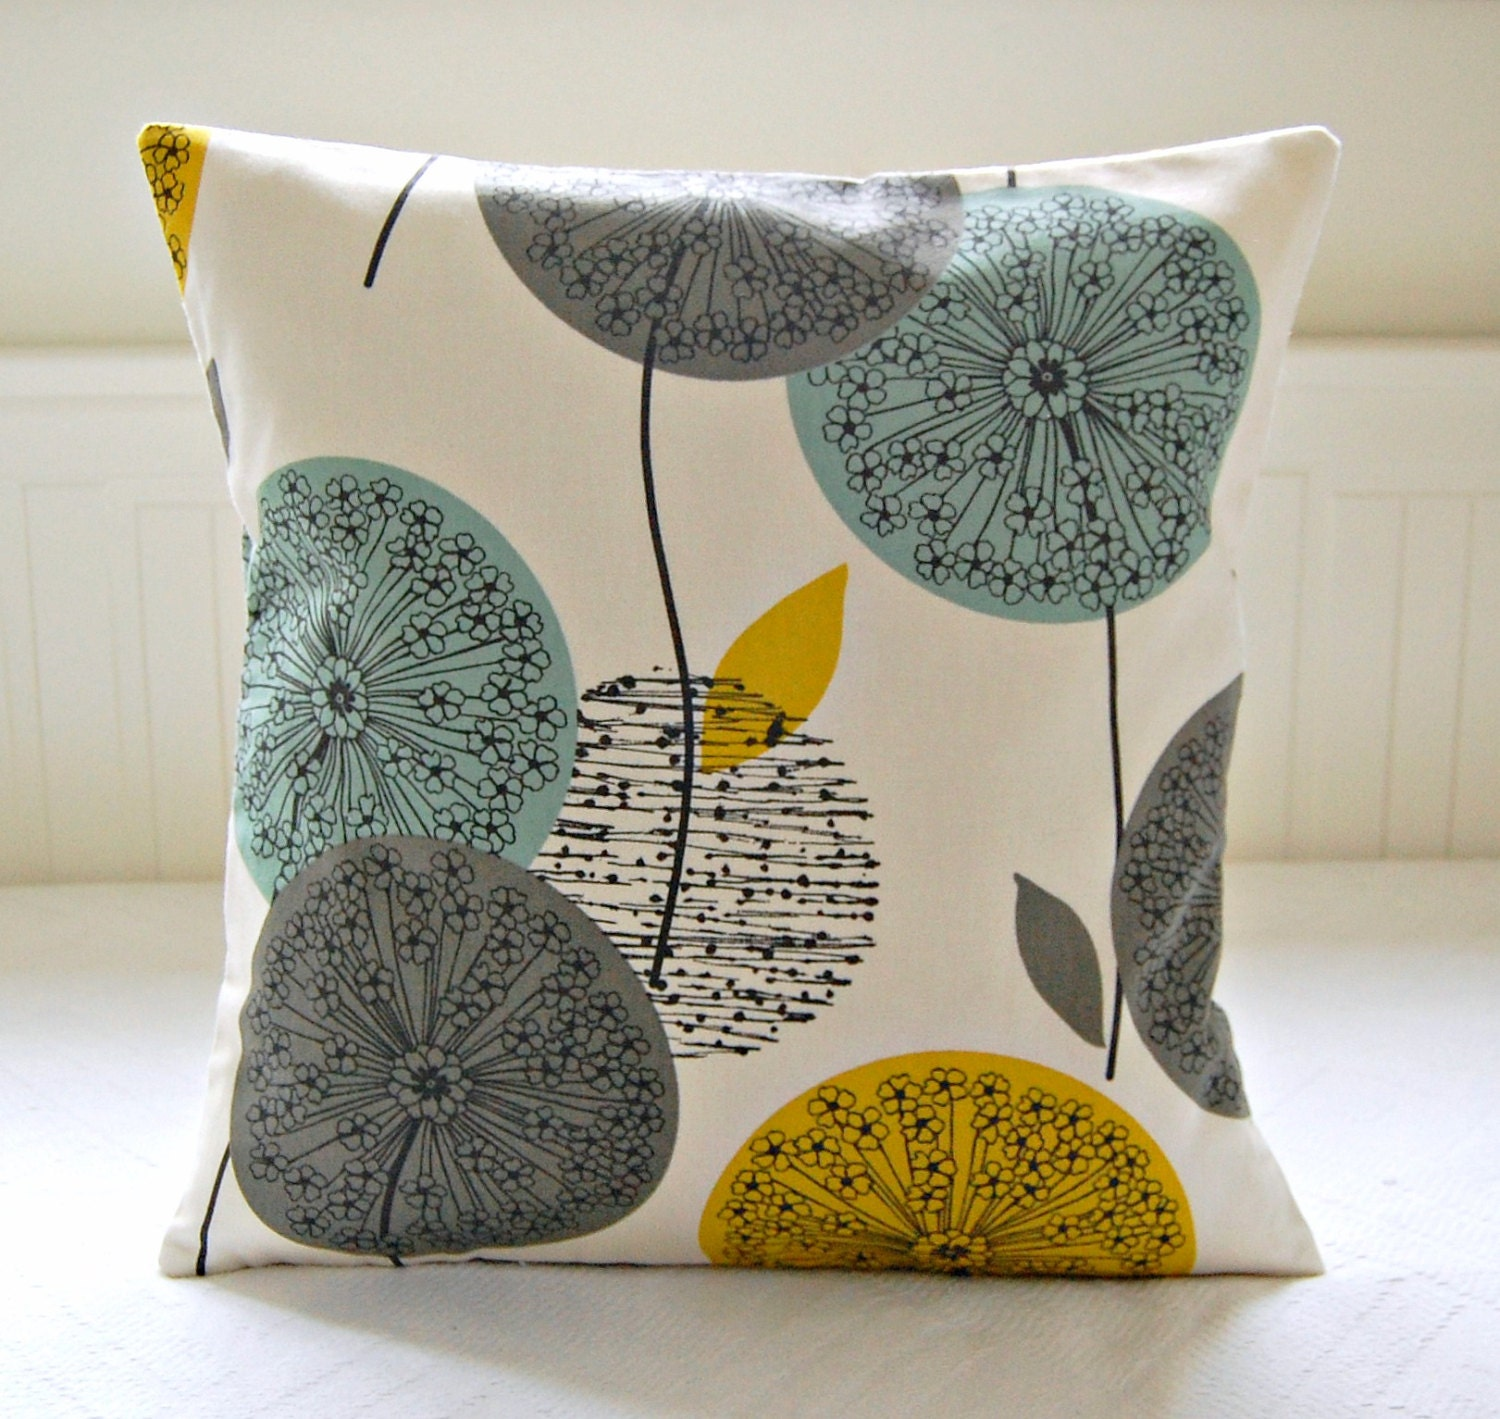 mustard teal grey pillow cover, dandelion flower cushion cover 18 inch - LittleJoobieBoo